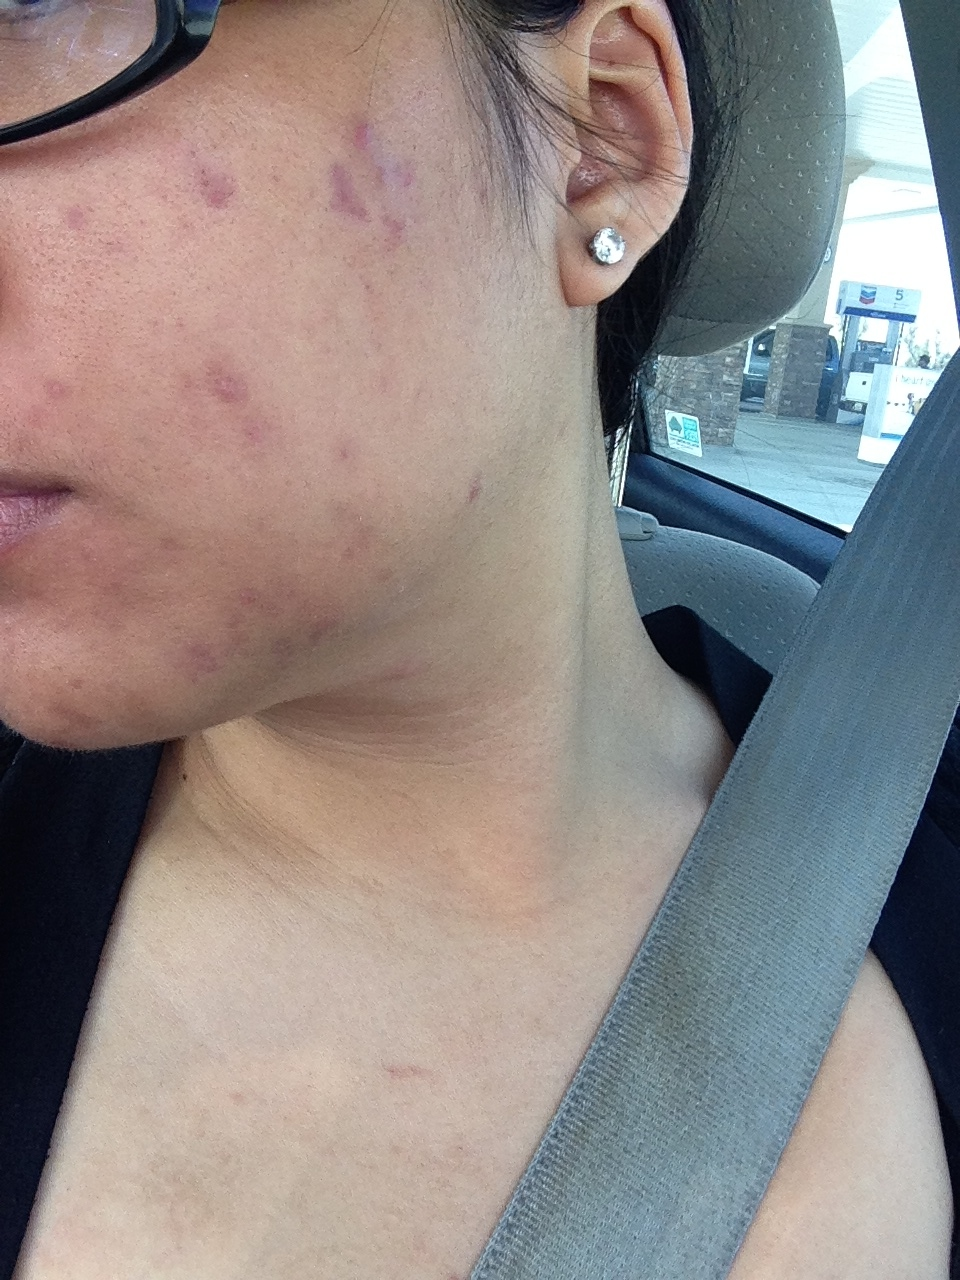 August 15th, 2014: The result of stopping all usage of products causing my allergic reaction and reverting back to my old regimen. Right before I started dermarolling (microneedling).